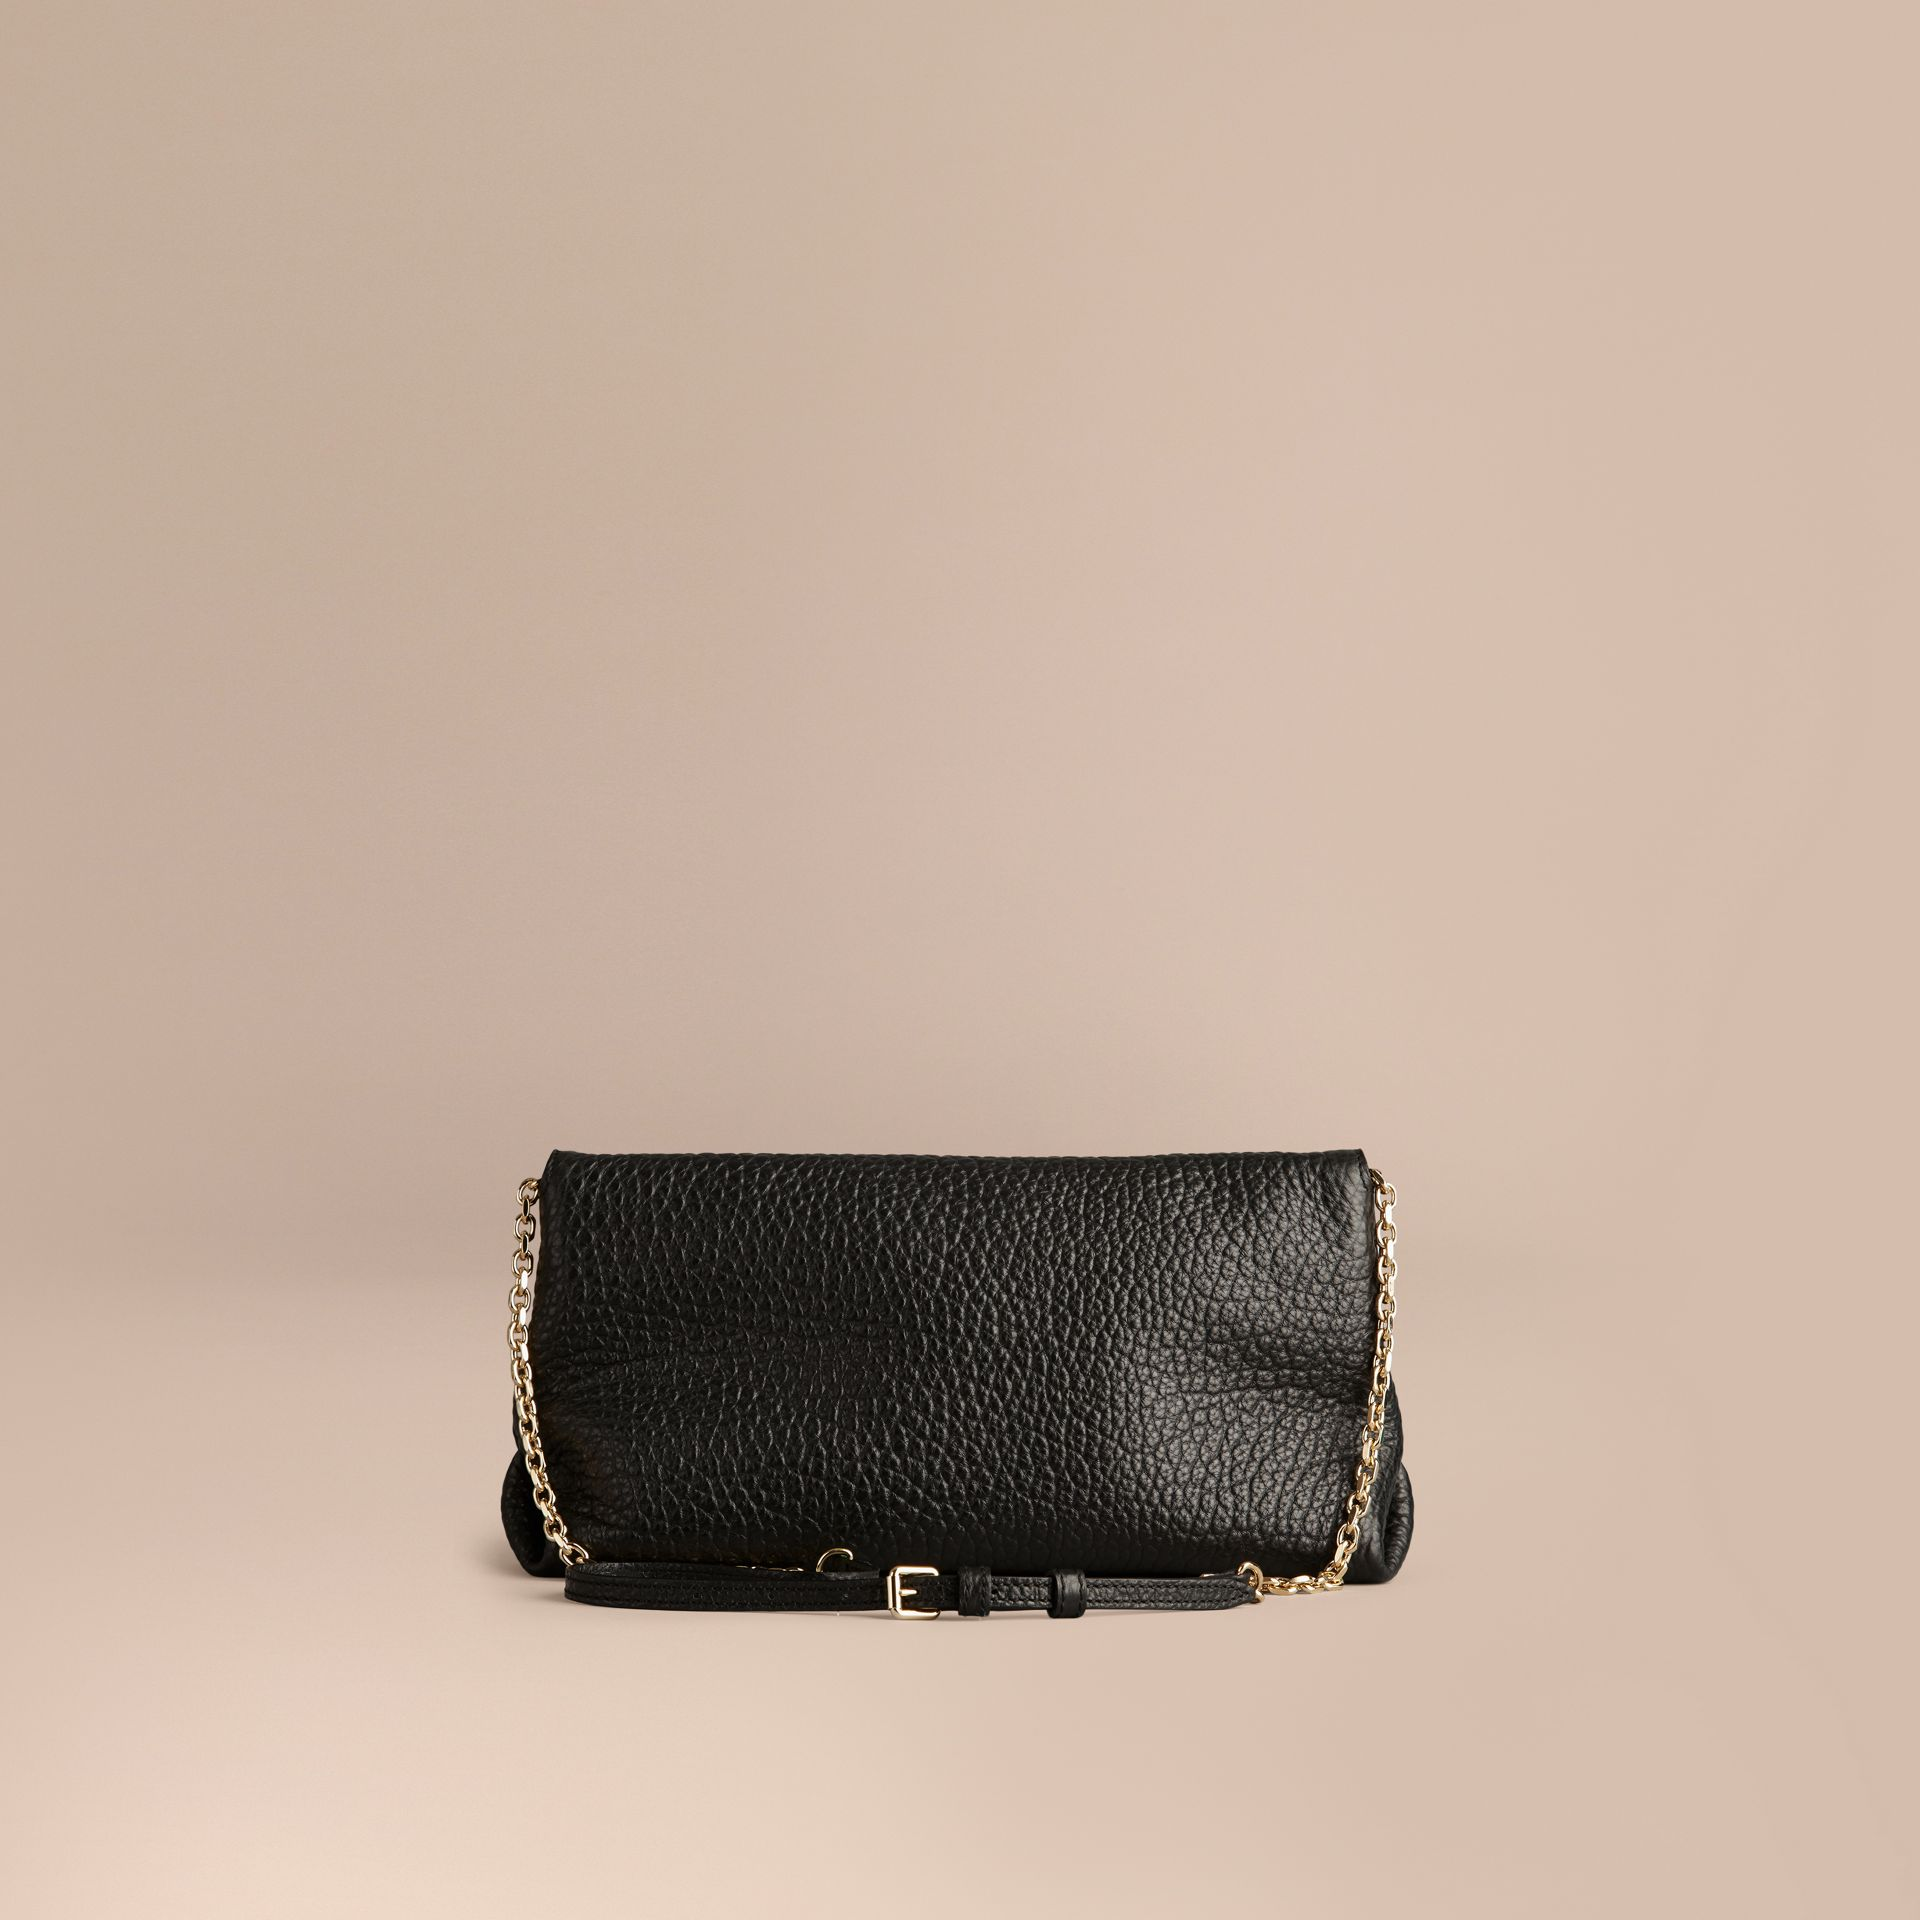 Noir Clutch medium en cuir grainé emblématique - photo de la galerie 4